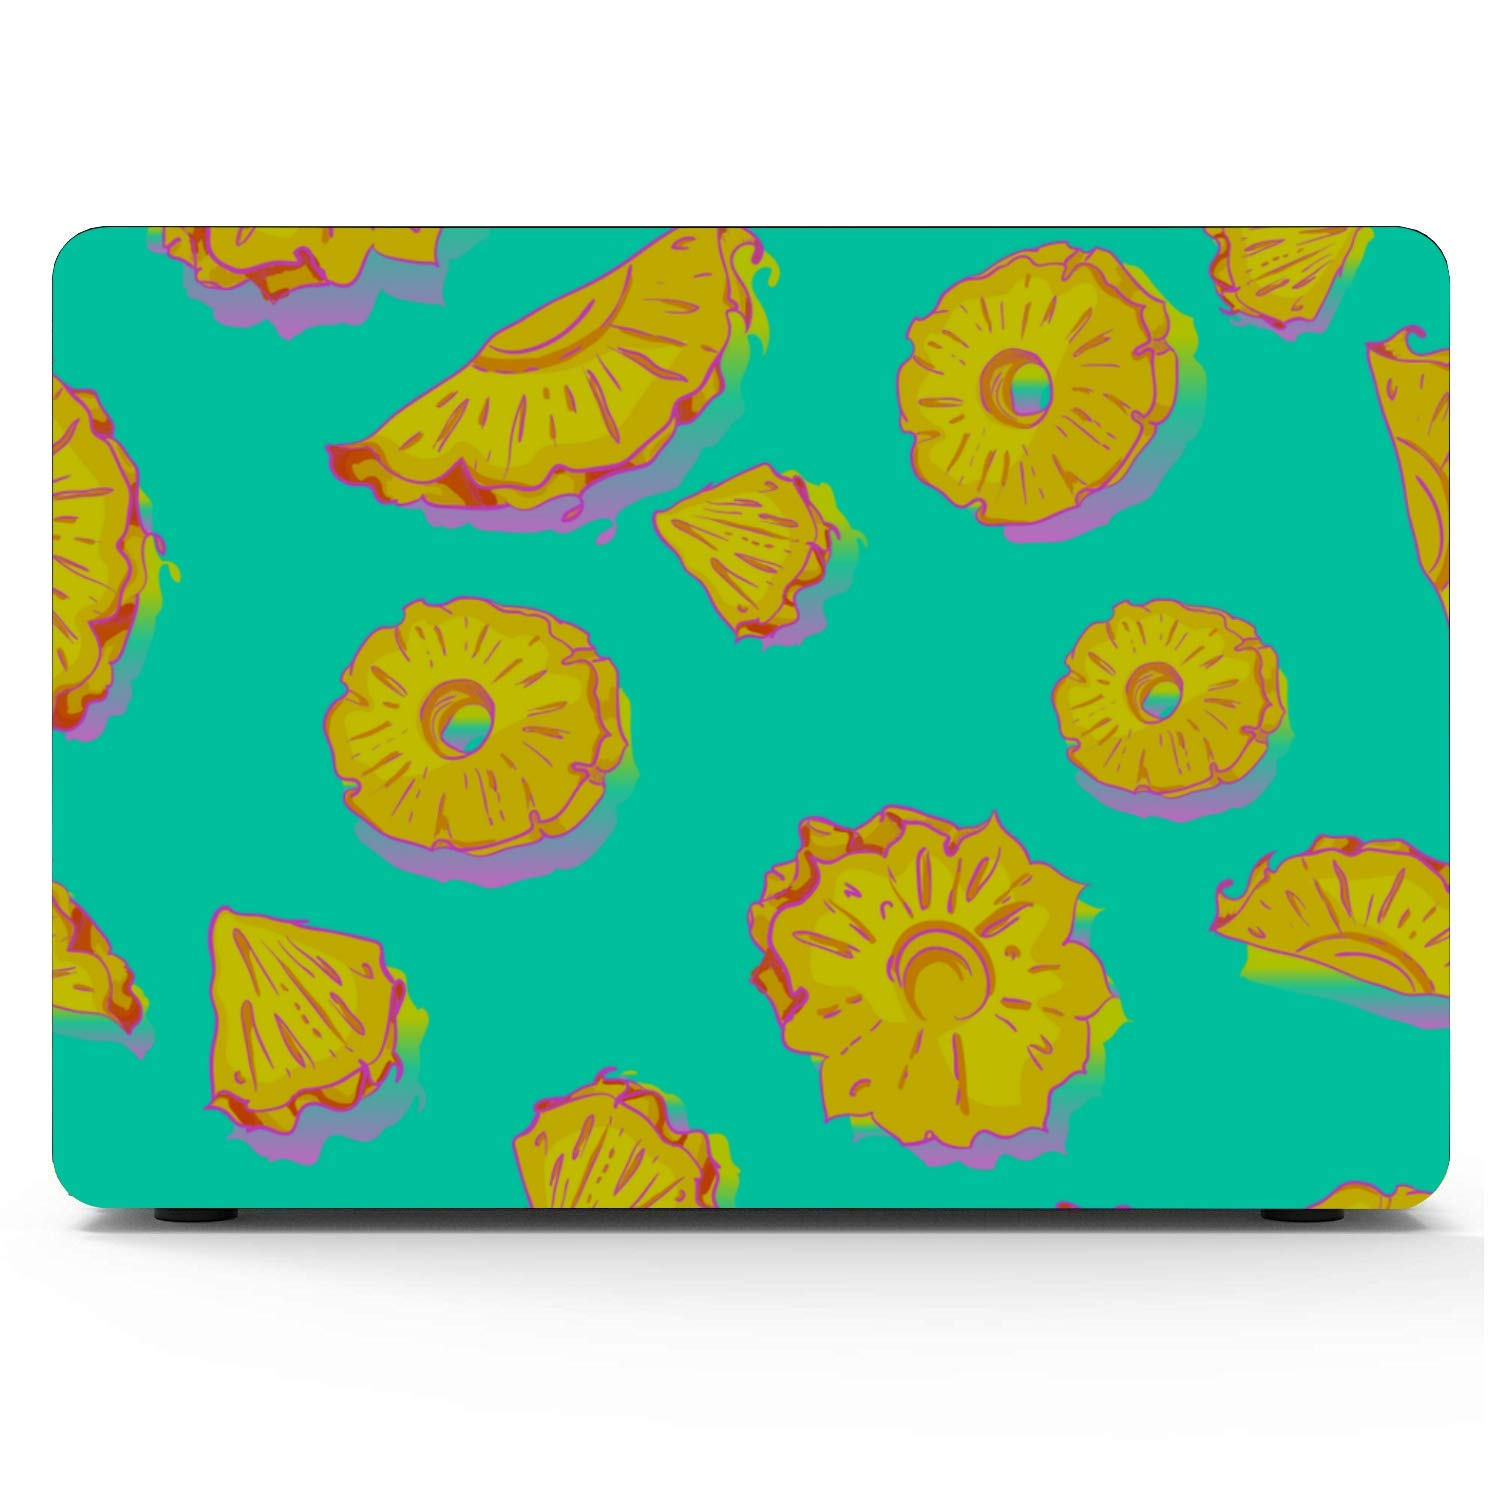 Laptop Covers Summer Fashion Fruit Pineapple Love Plastic Hard Shell Compatible Mac Air 11 Pro 13 15 Mac Computer Cover Protection for MacBook 2016-2019 Version